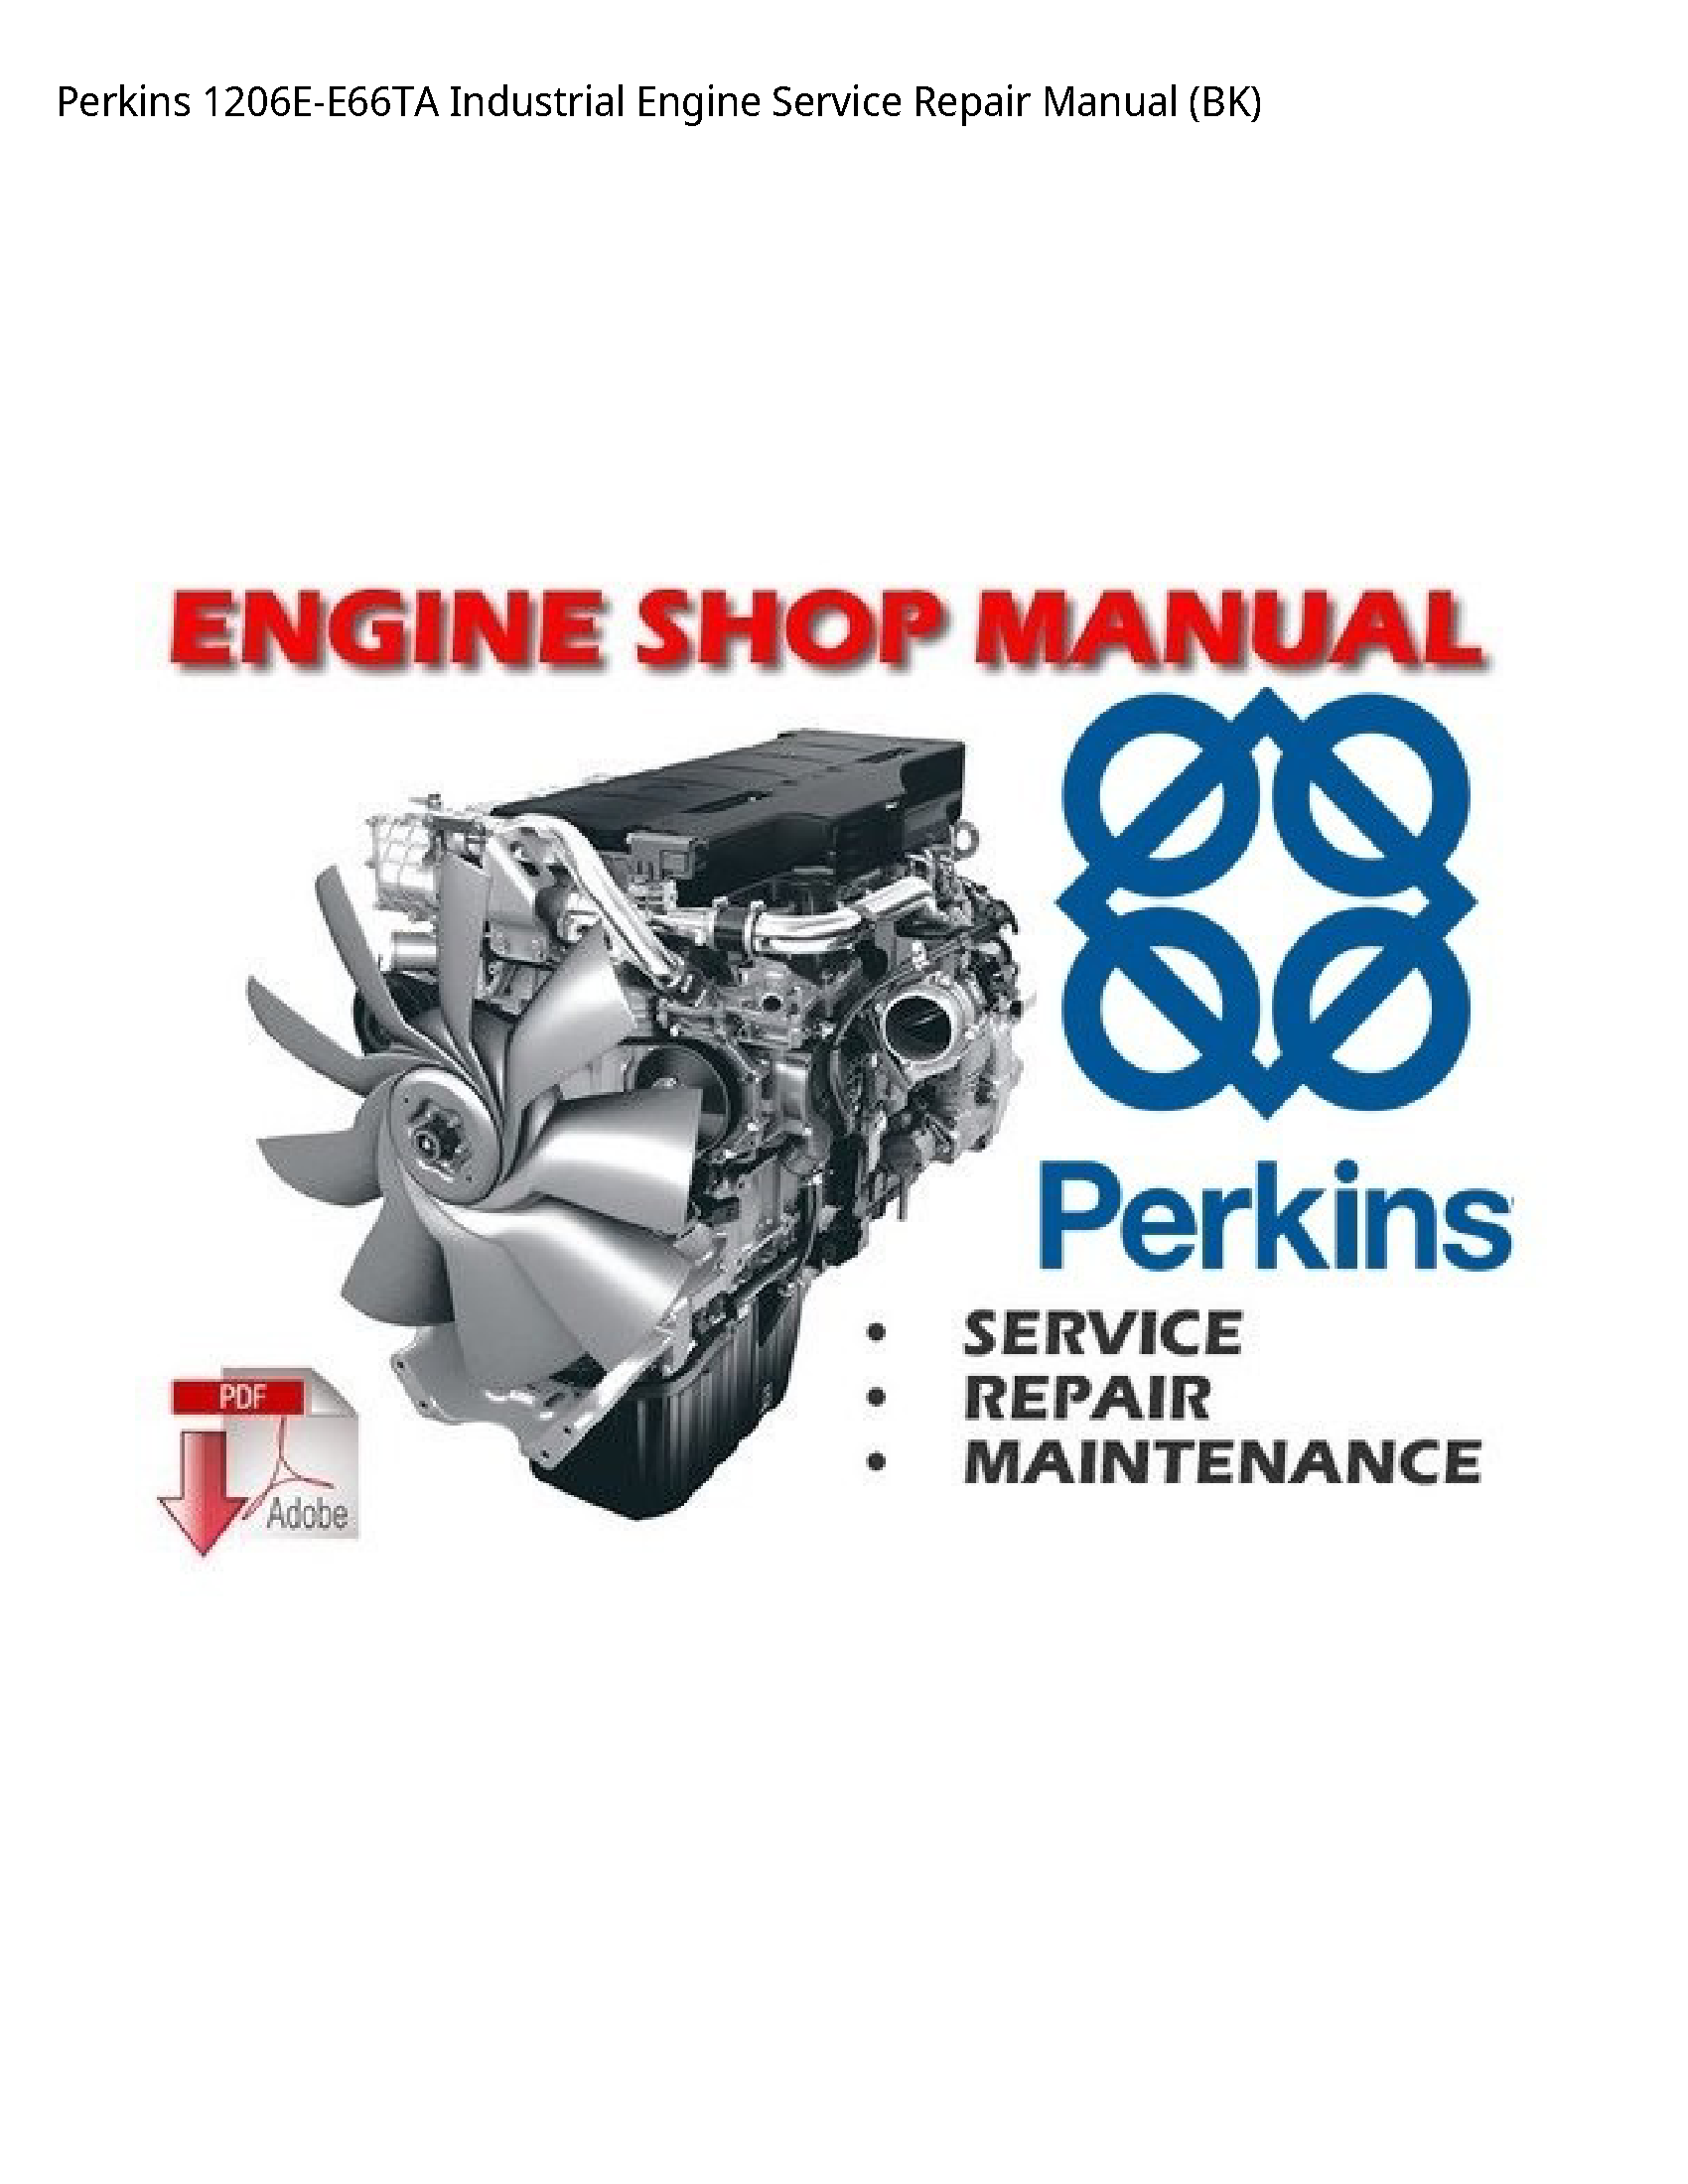 Perkins 1206E-E66TA Industrial Engine manual